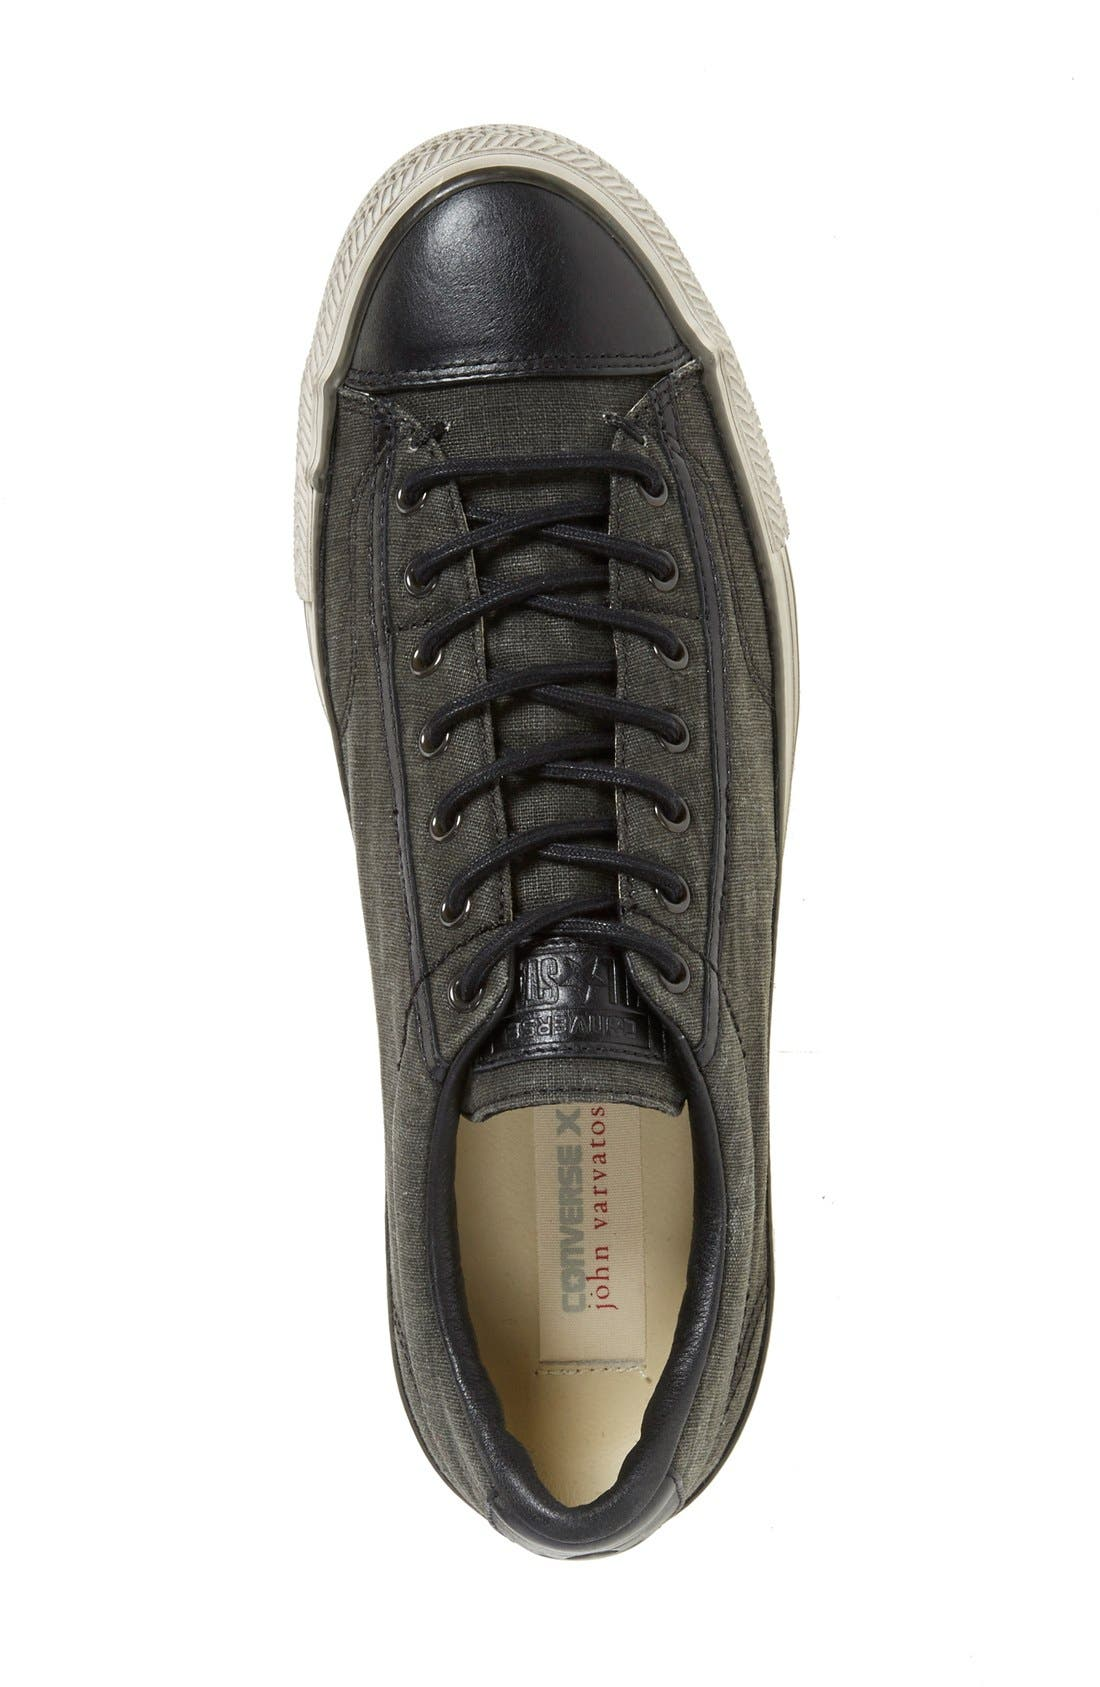 CONVERSE BY JOHN VARVATOS,                             Chuck Taylor<sup>®</sup> All Star<sup>®</sup> Sneaker,                             Alternate thumbnail 4, color,                             013